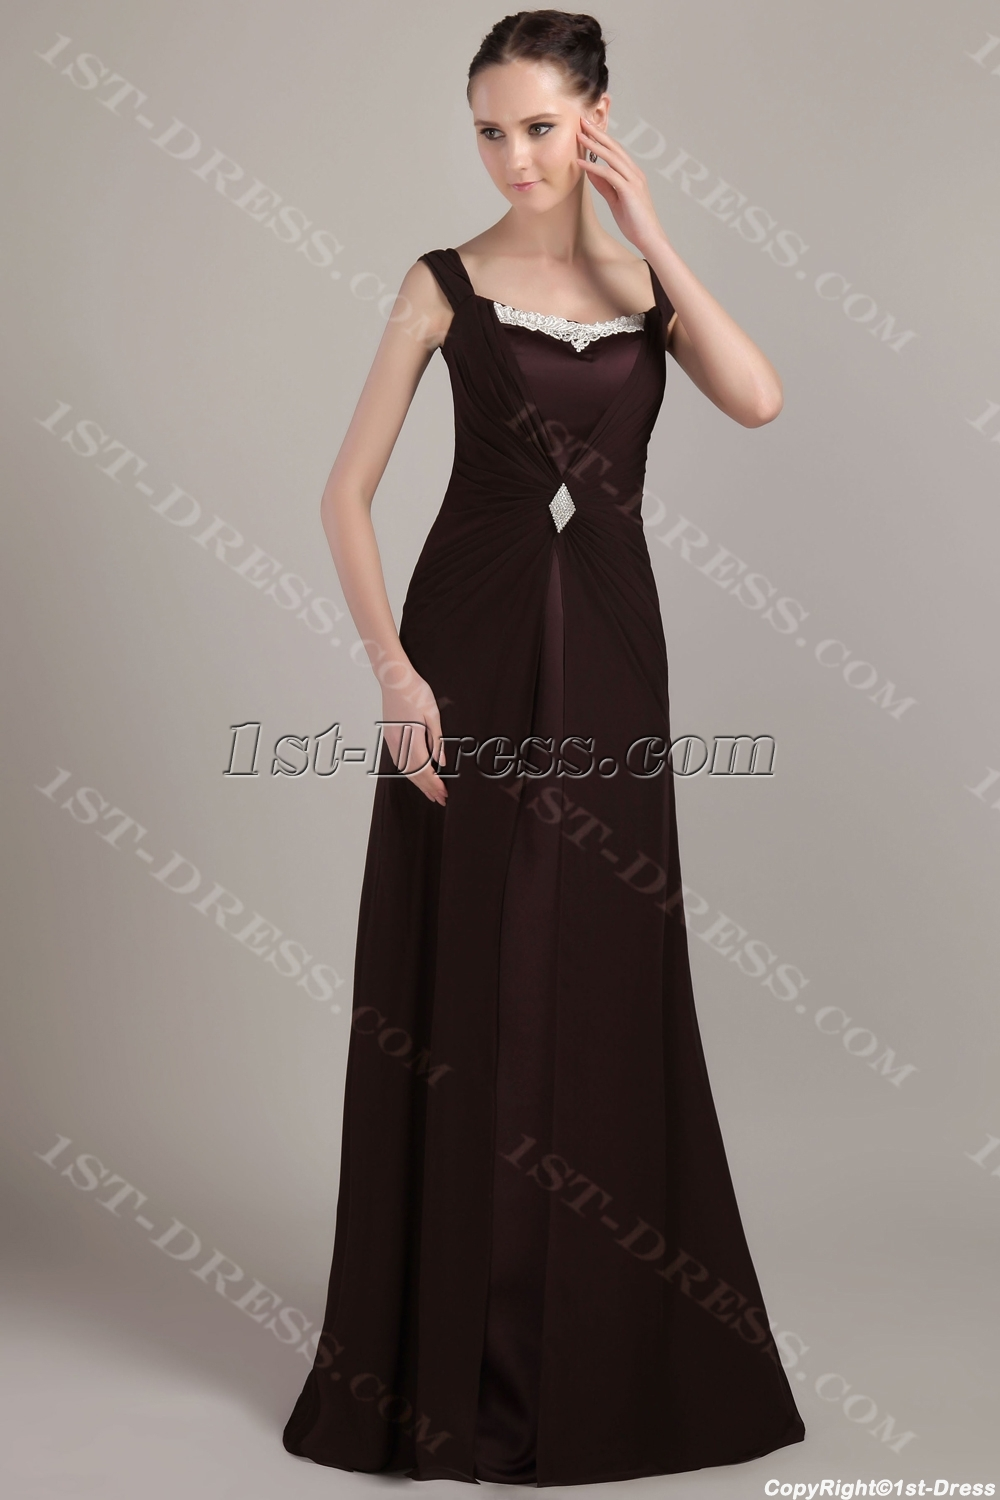 images/201304/big/Chocolate-Chiffon-Long-Mother-of-Groom-Gown-with-Cap-Sleeves-IMG_3503-1073-b-1-1366203558.jpg